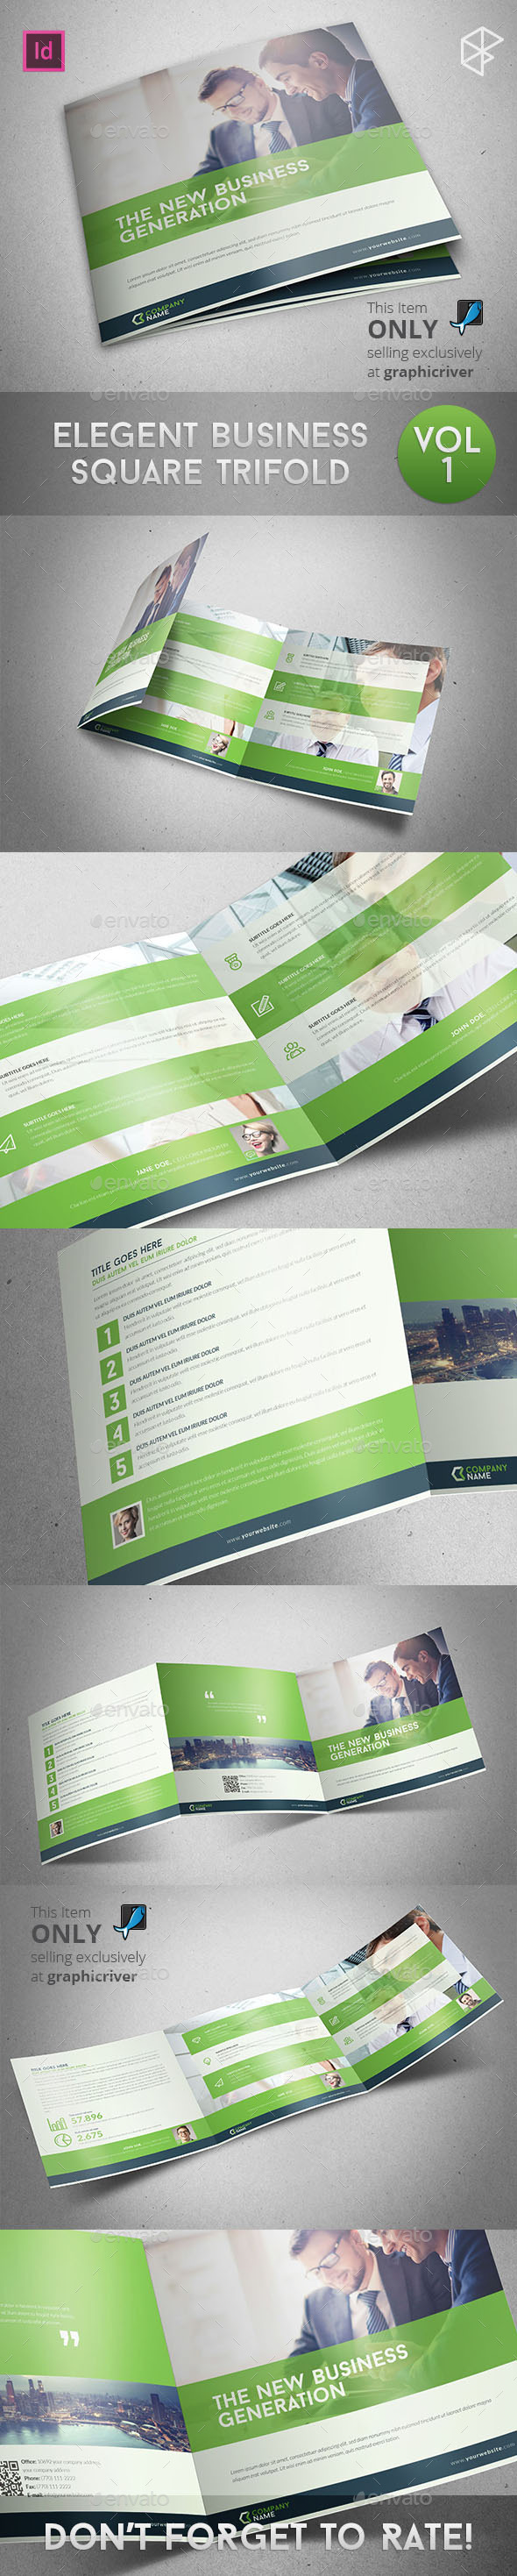 GraphicRiver Elegant Business Square Trifold 11349751